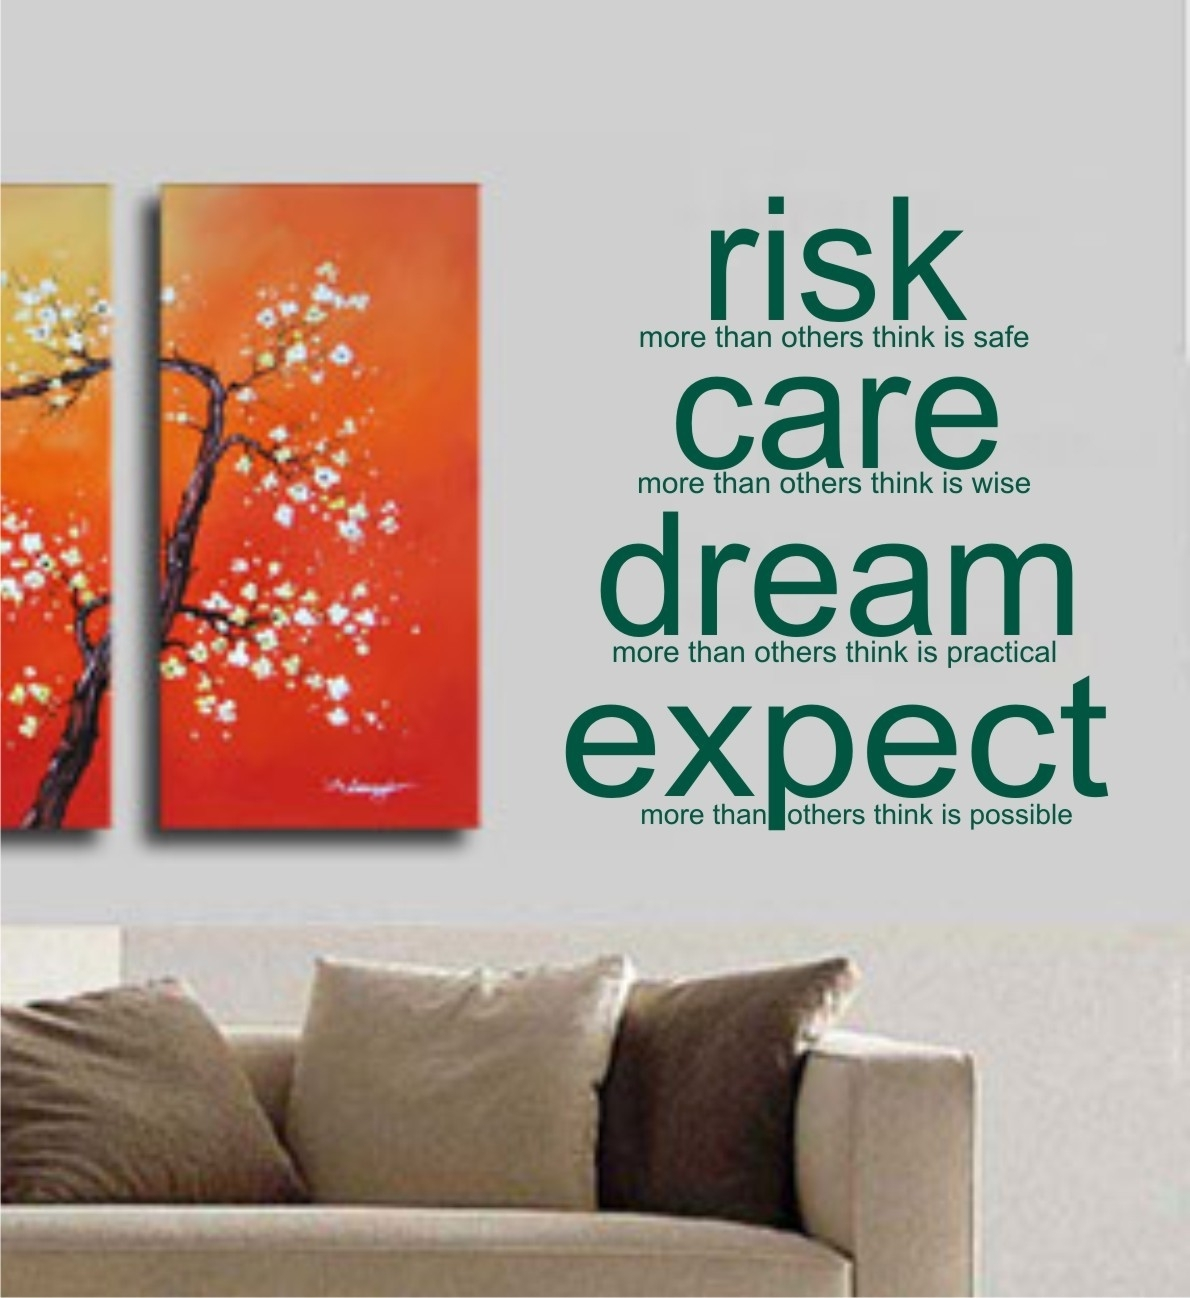 Office Wall Decor Cool Wall Decor Office - Home Design And Wall pertaining to Office Wall Art (Image 16 of 20)